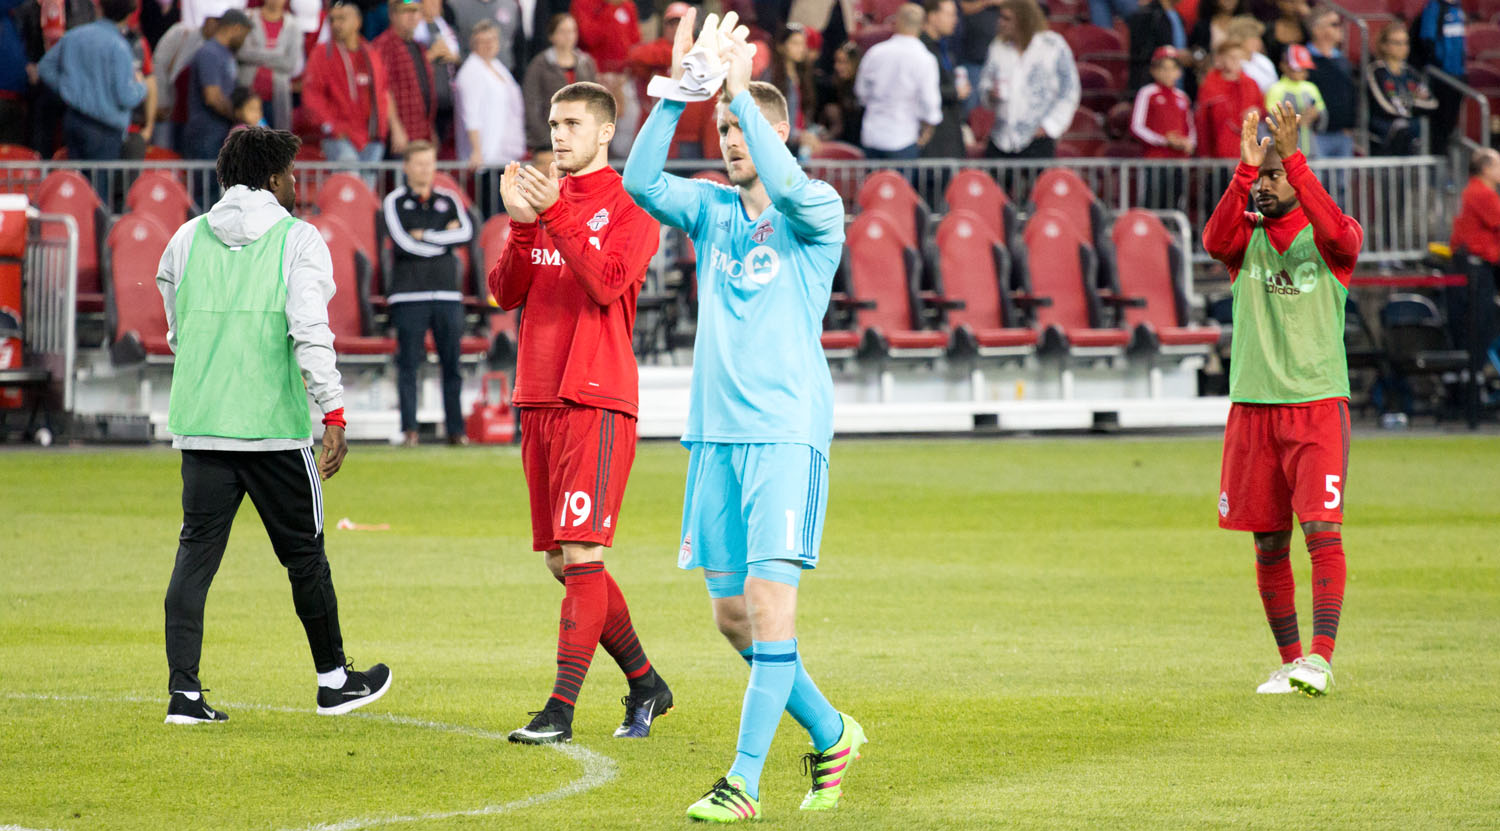 Clint Irwin (with the clean sheet)thanks the south end supporter's section after the conclusion of a Toronto FC match in which the team would score 4 goals.Image by Dennis Marciniak of denMAR Media.